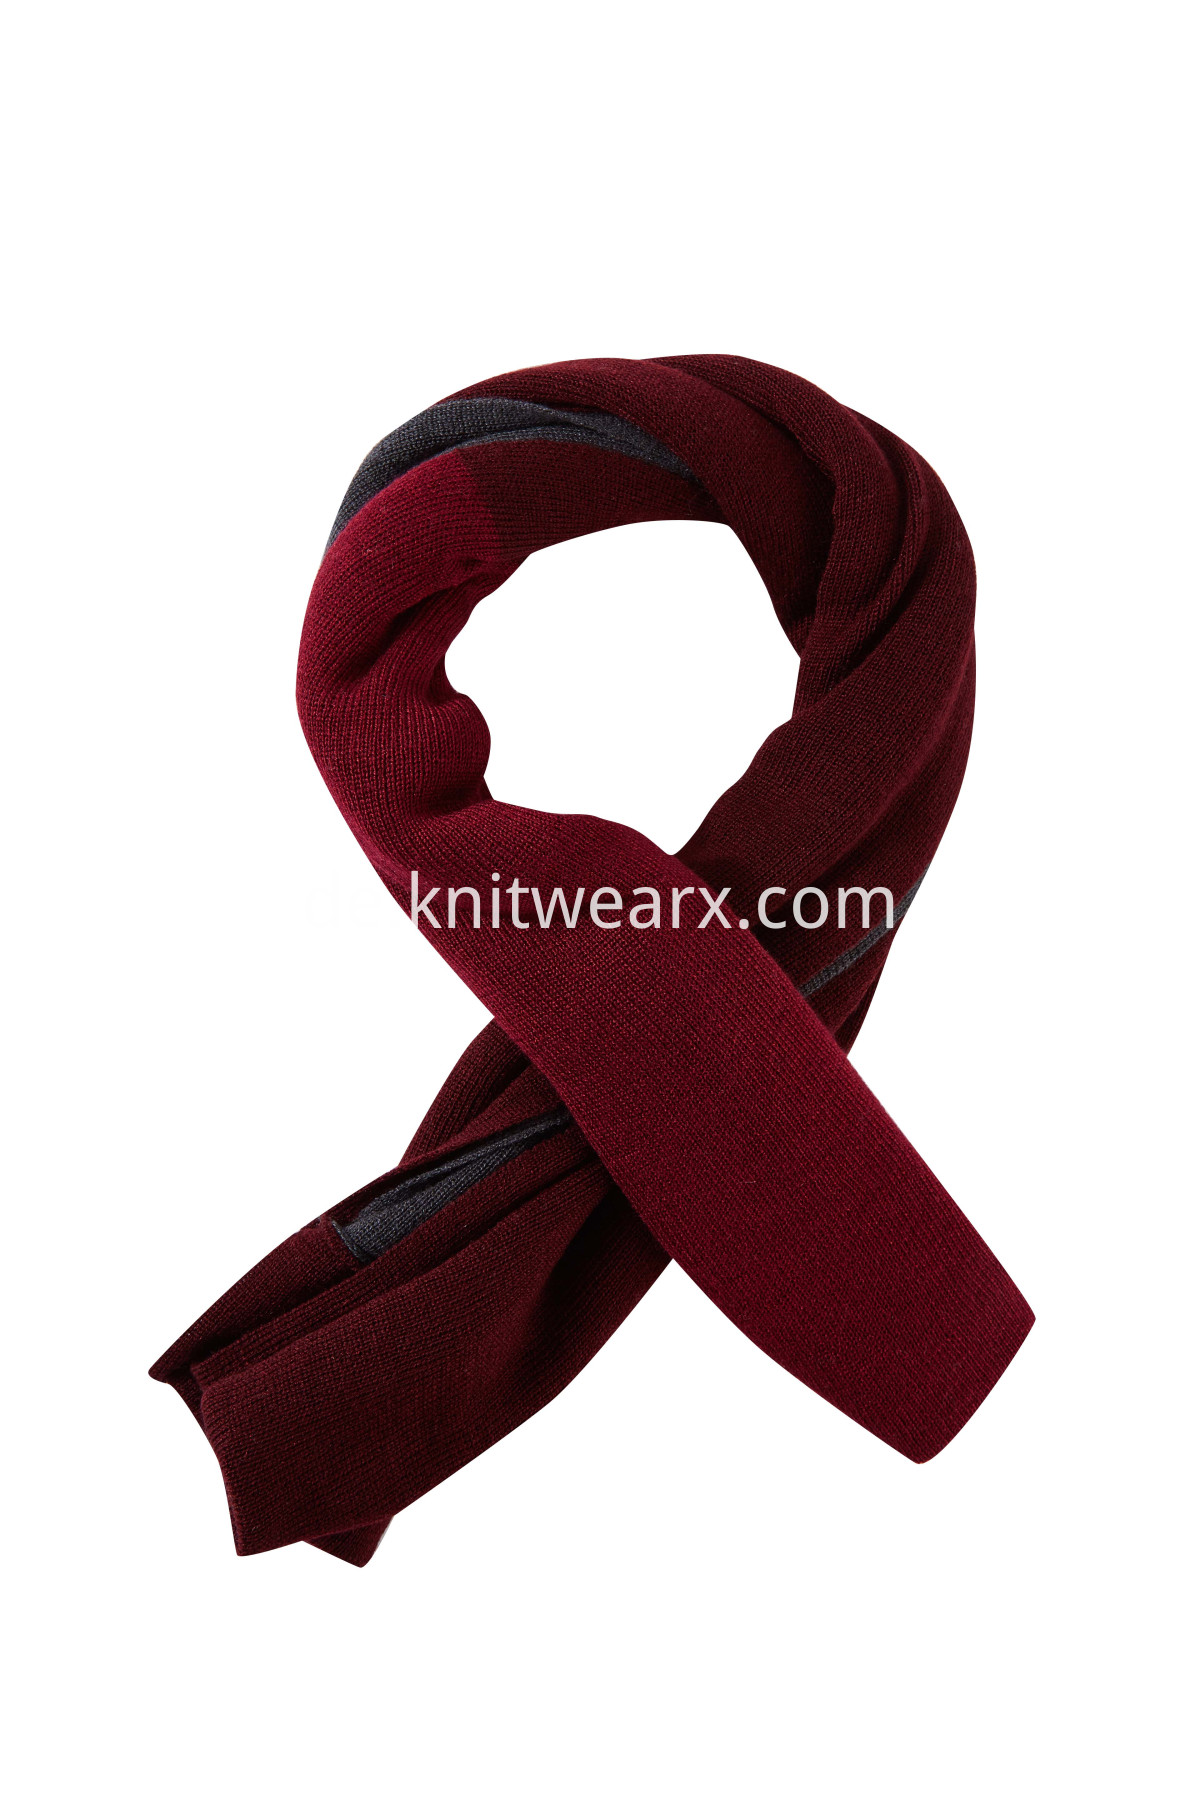 Women's Accessories Knit Winter Infinity Circle Loop Scarf